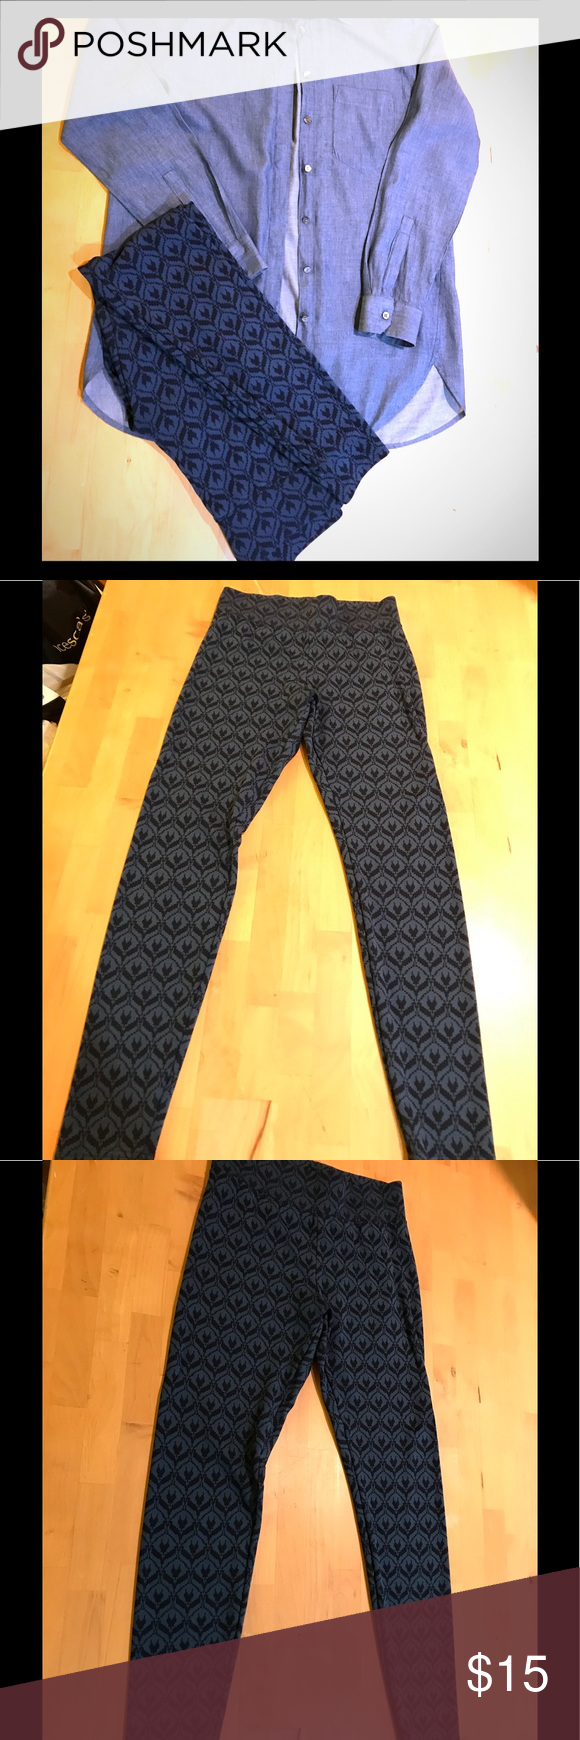 1332f7c8e8bb93 Merona Patterned Leggings Merona leggings; 27' inseam;  rayon/polyester/spandex blend; cute pattern, only worn once or twice. Color  is a deep teal ad black ...